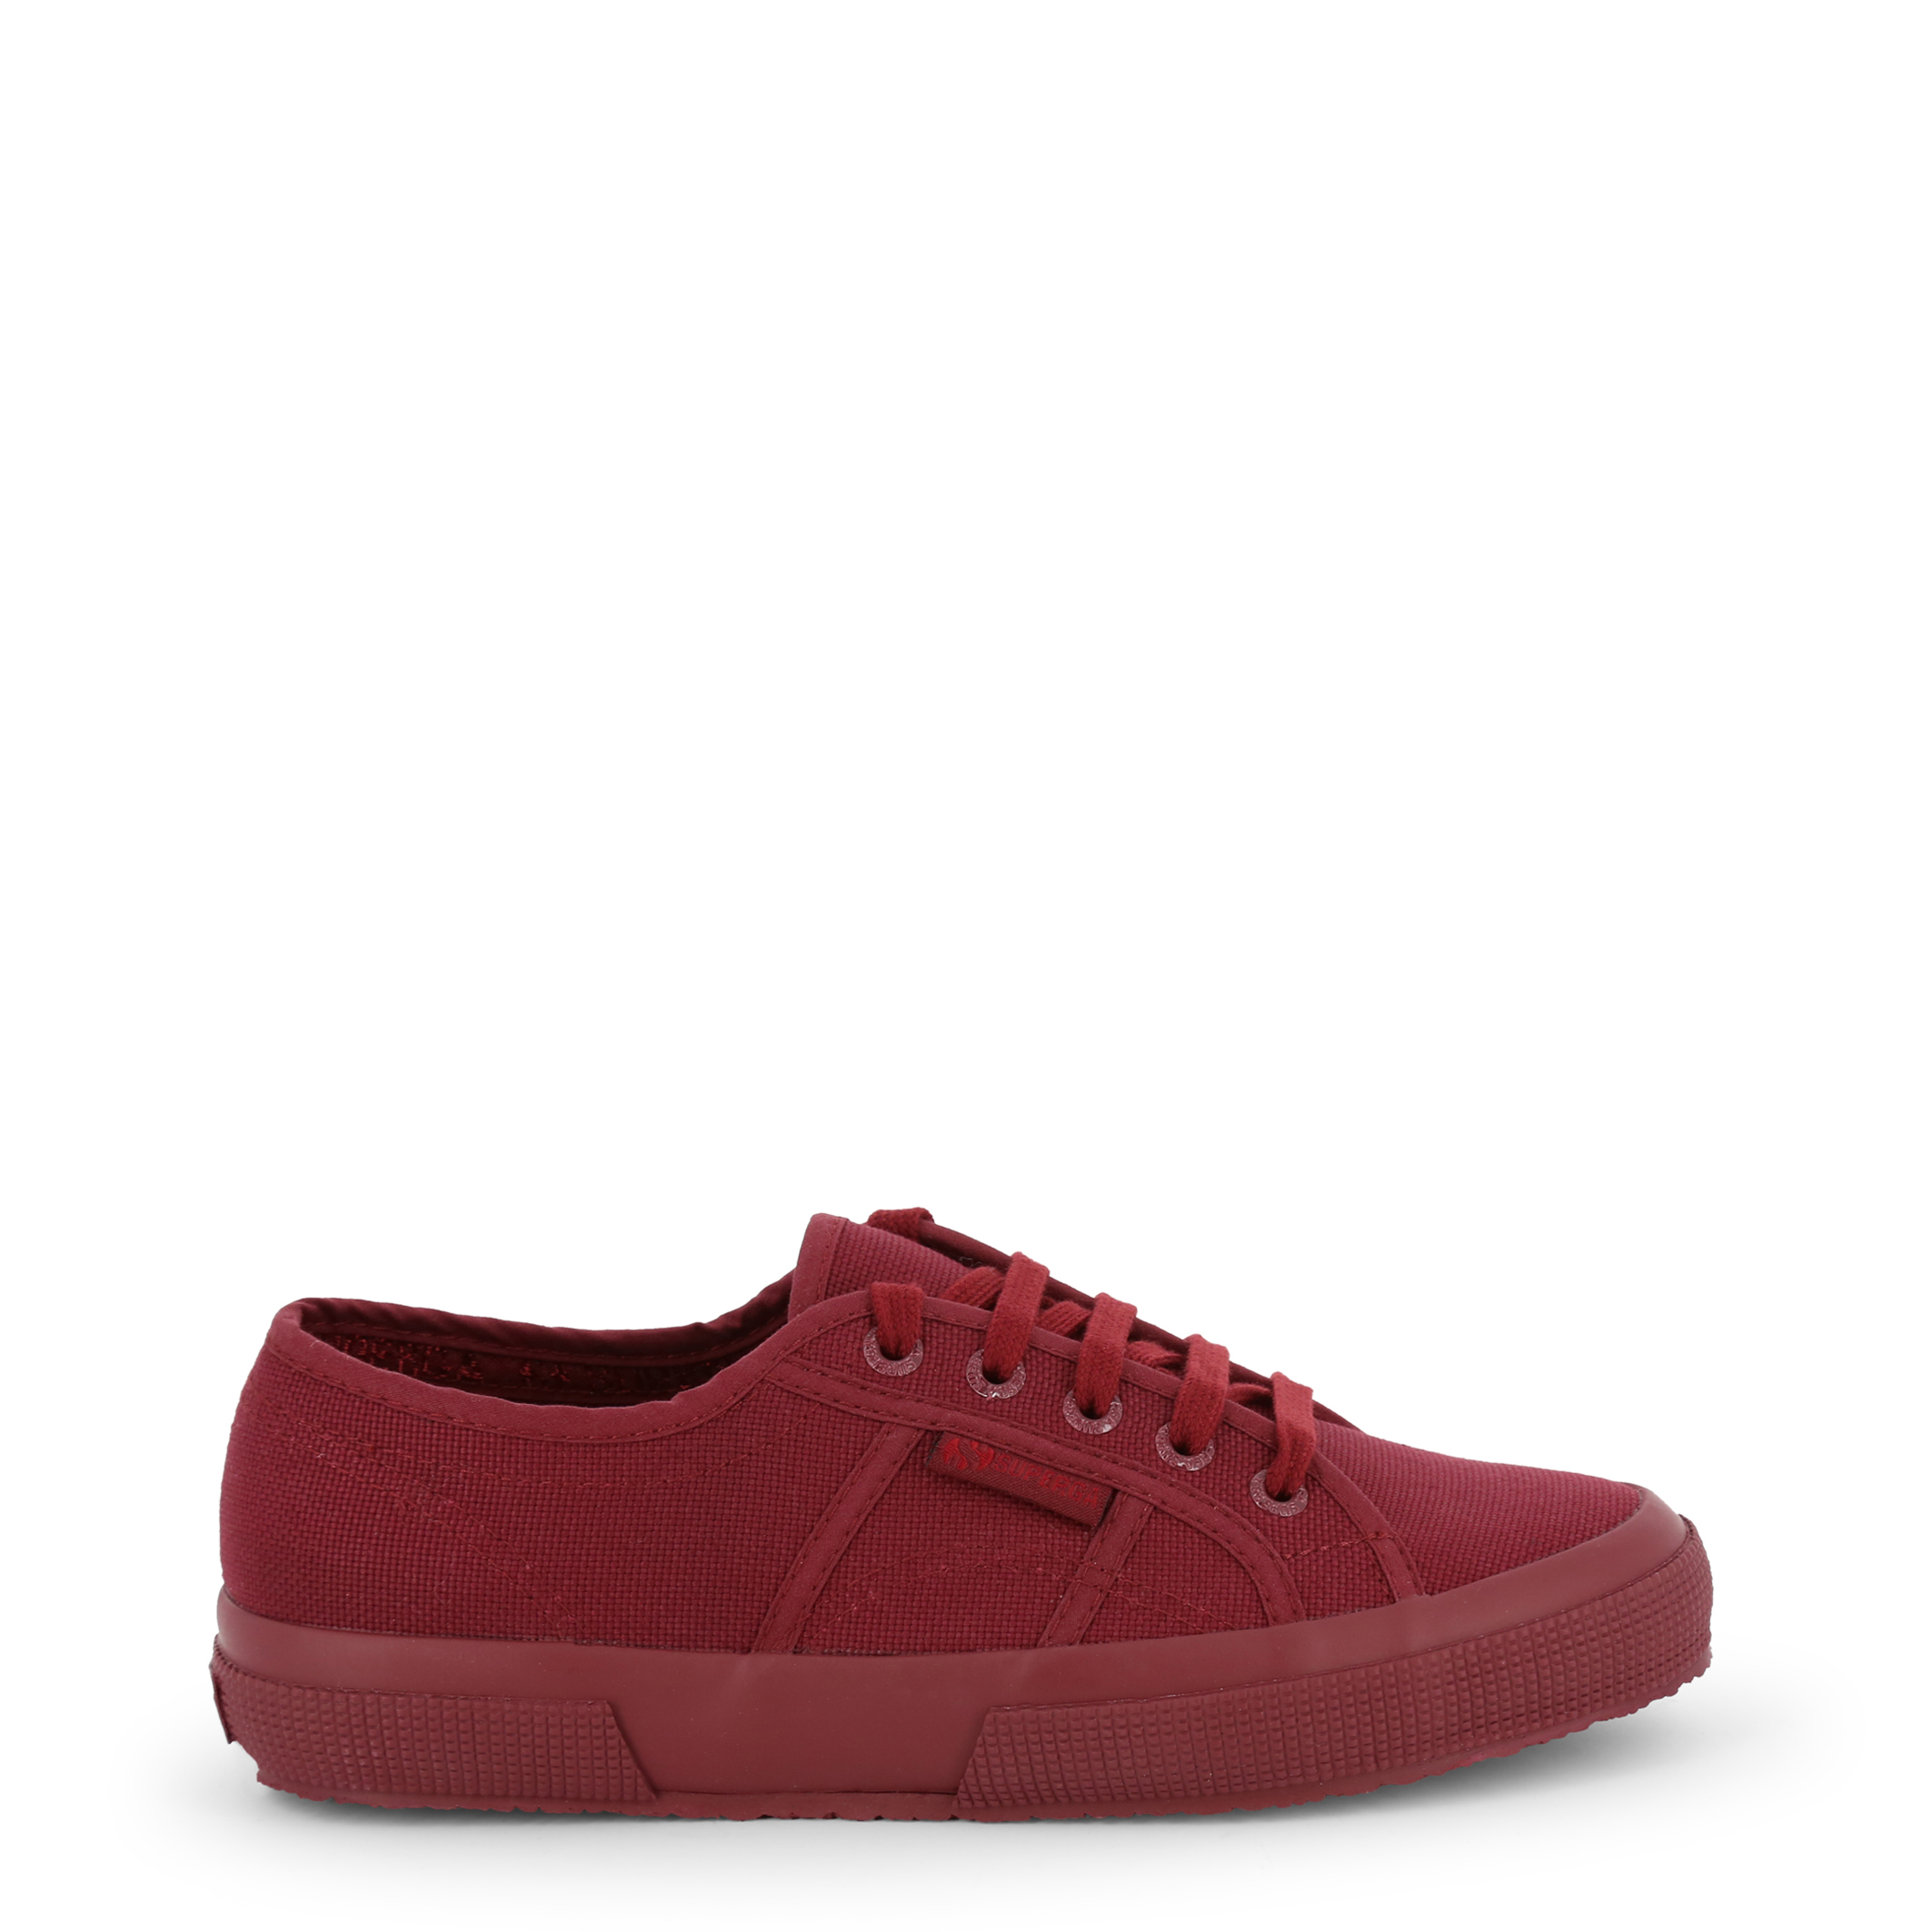 Chaussures de ville  Superga 2750-COTU-CLASSIC red